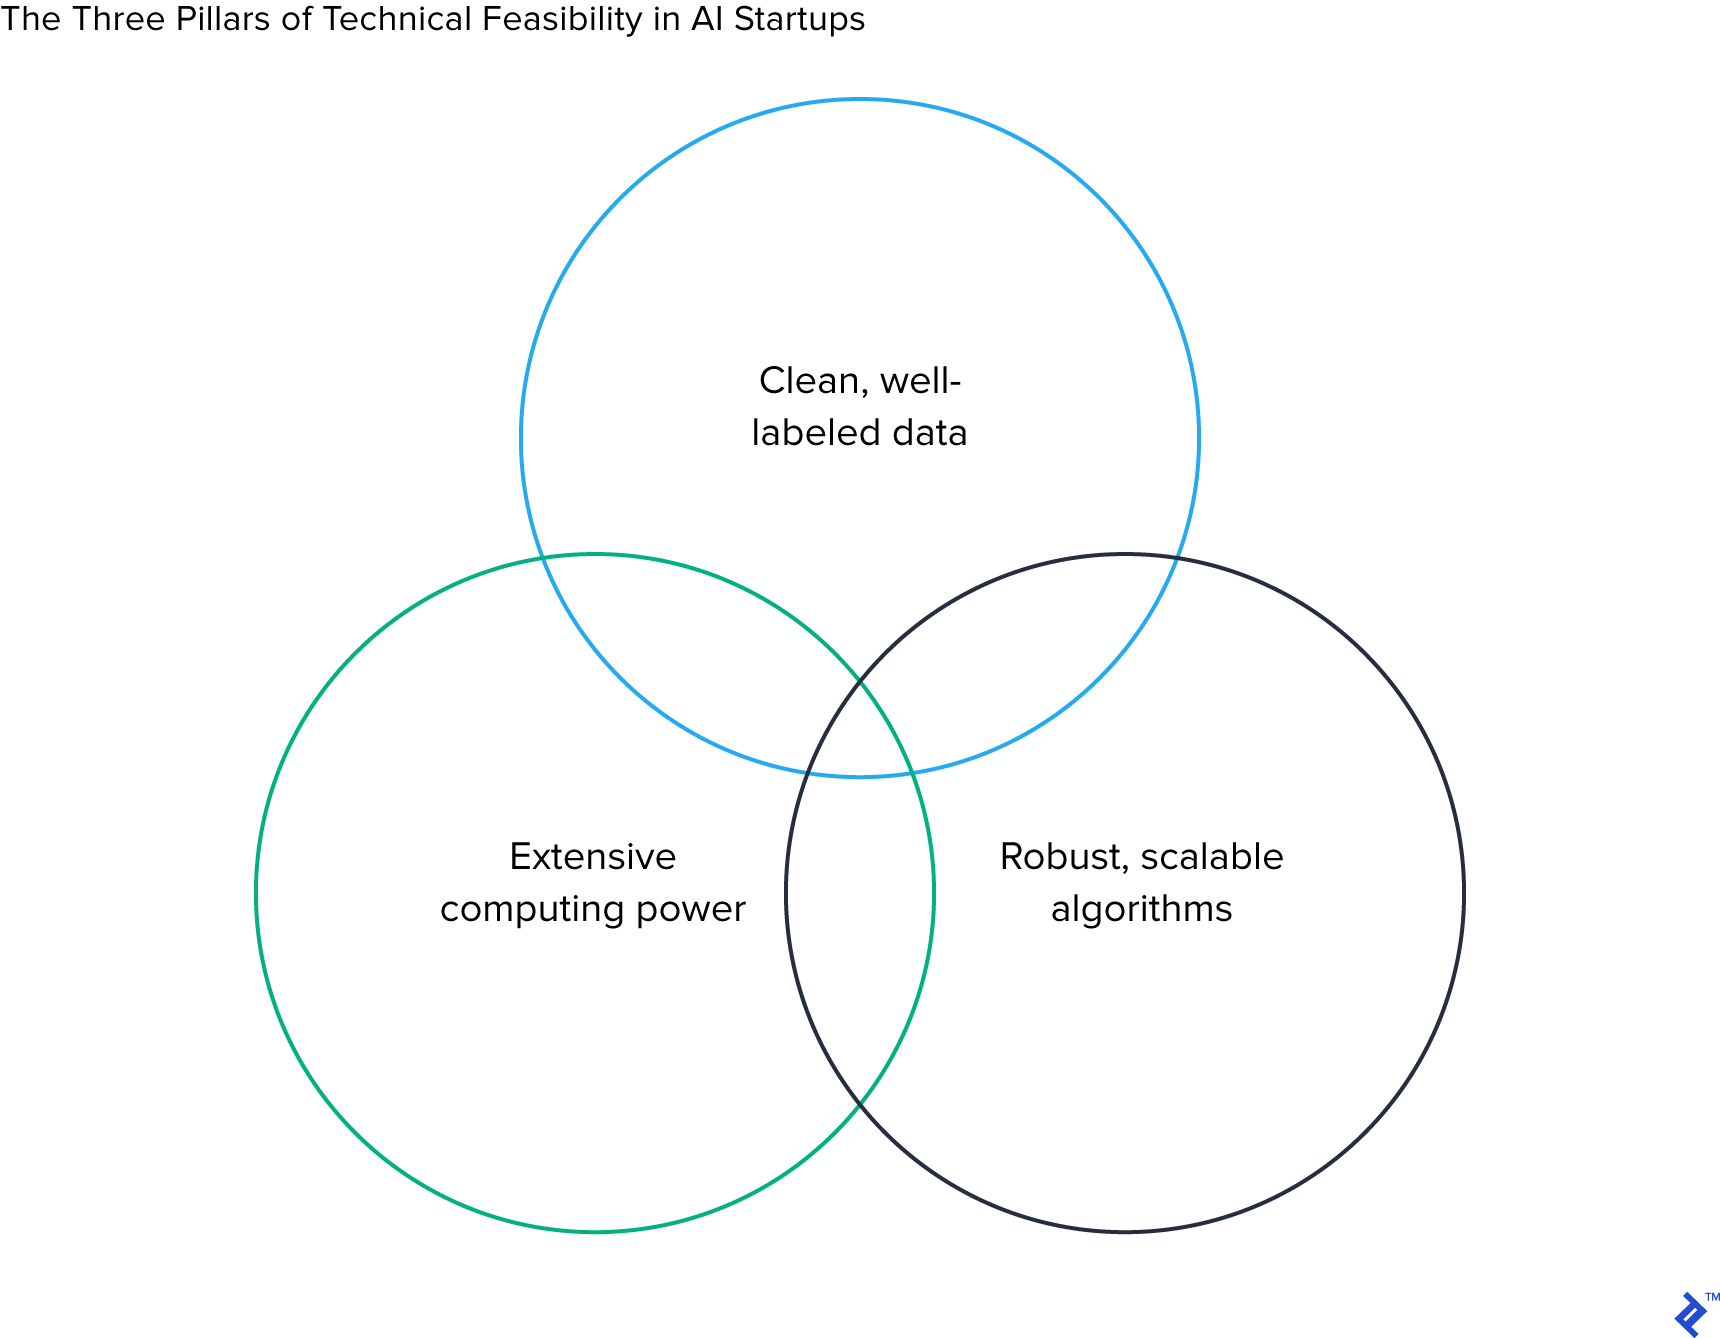 Circle diagram of the three pillars of the technical feasibility in AI startups.